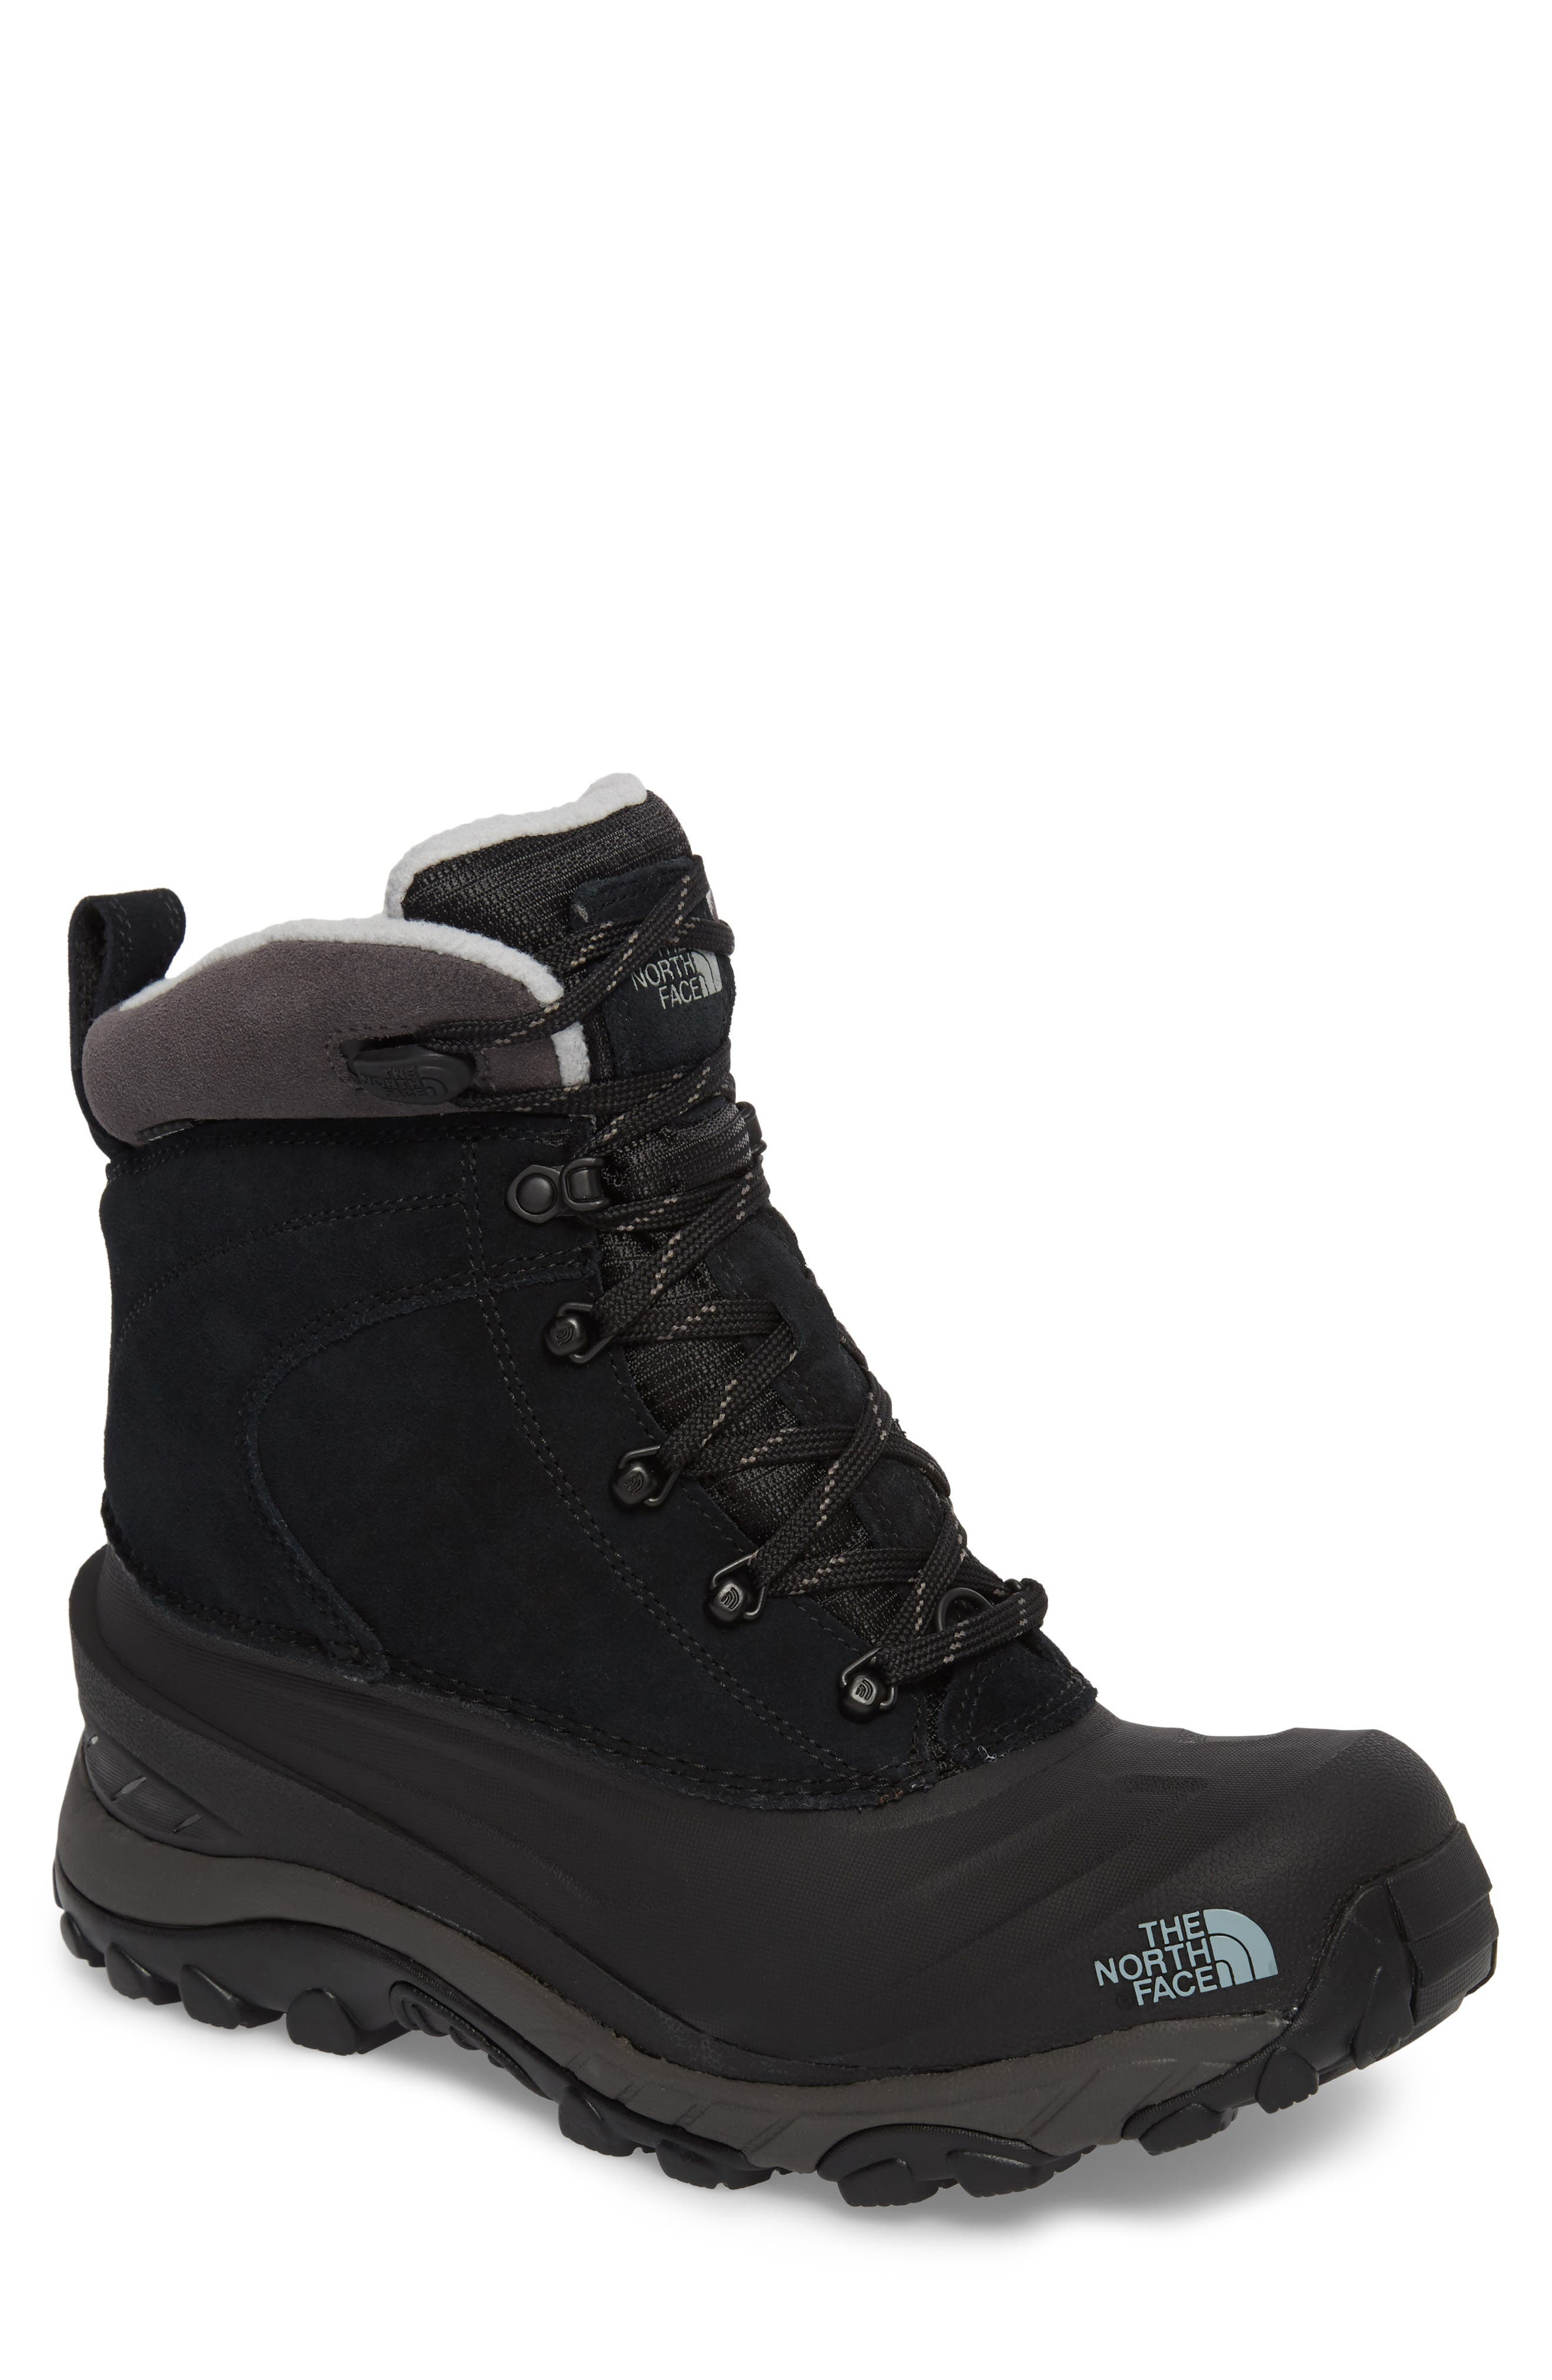 Alternate Image 1 Selected - The North Face Chilkat III Waterproof Insulated Boot (Men)